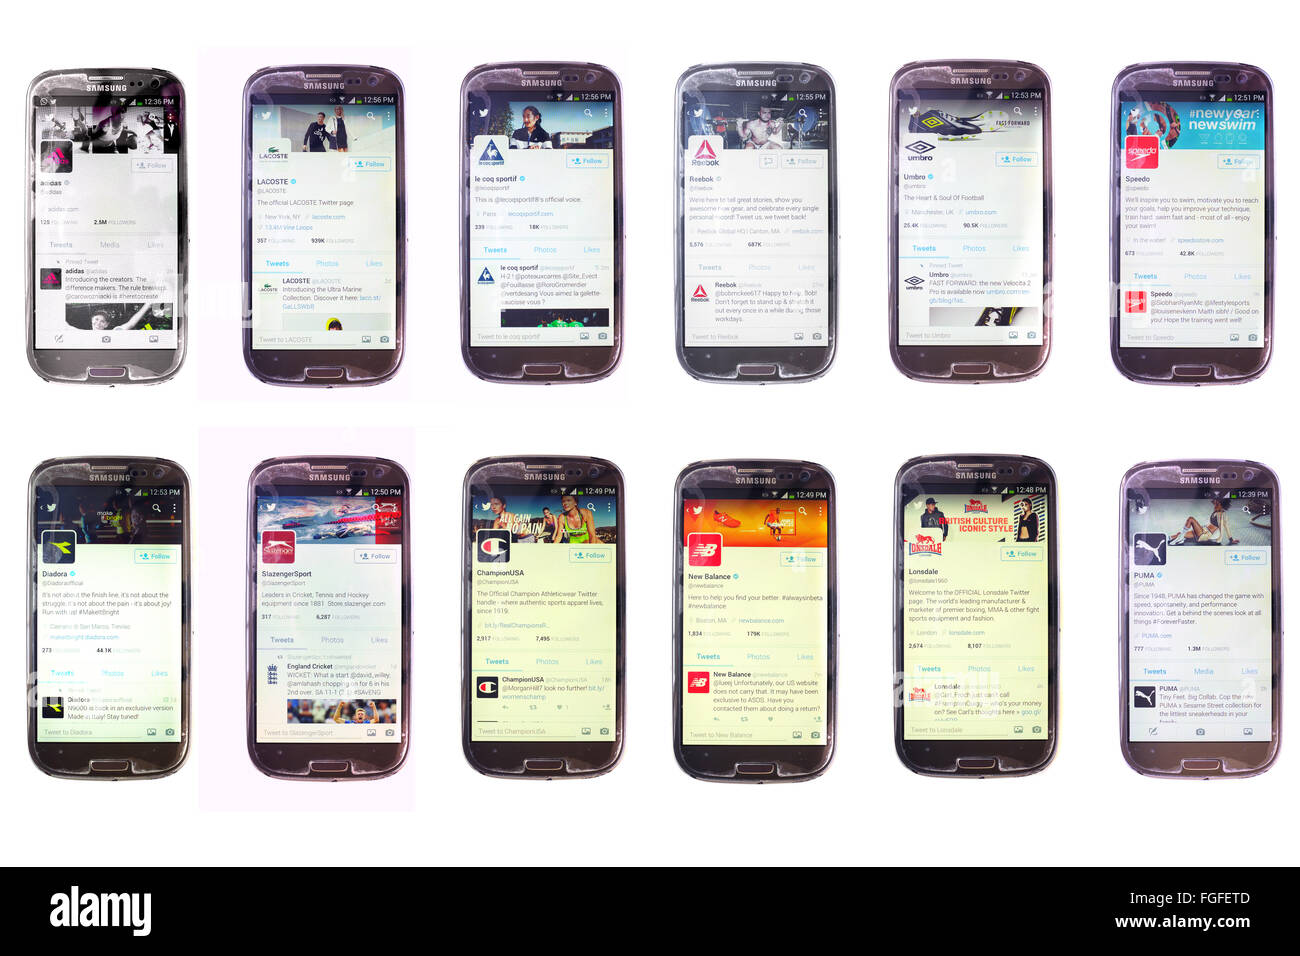 Sports clothing companies twitter accounts on the screens of  smartphones photographed against a white background. - Stock Image